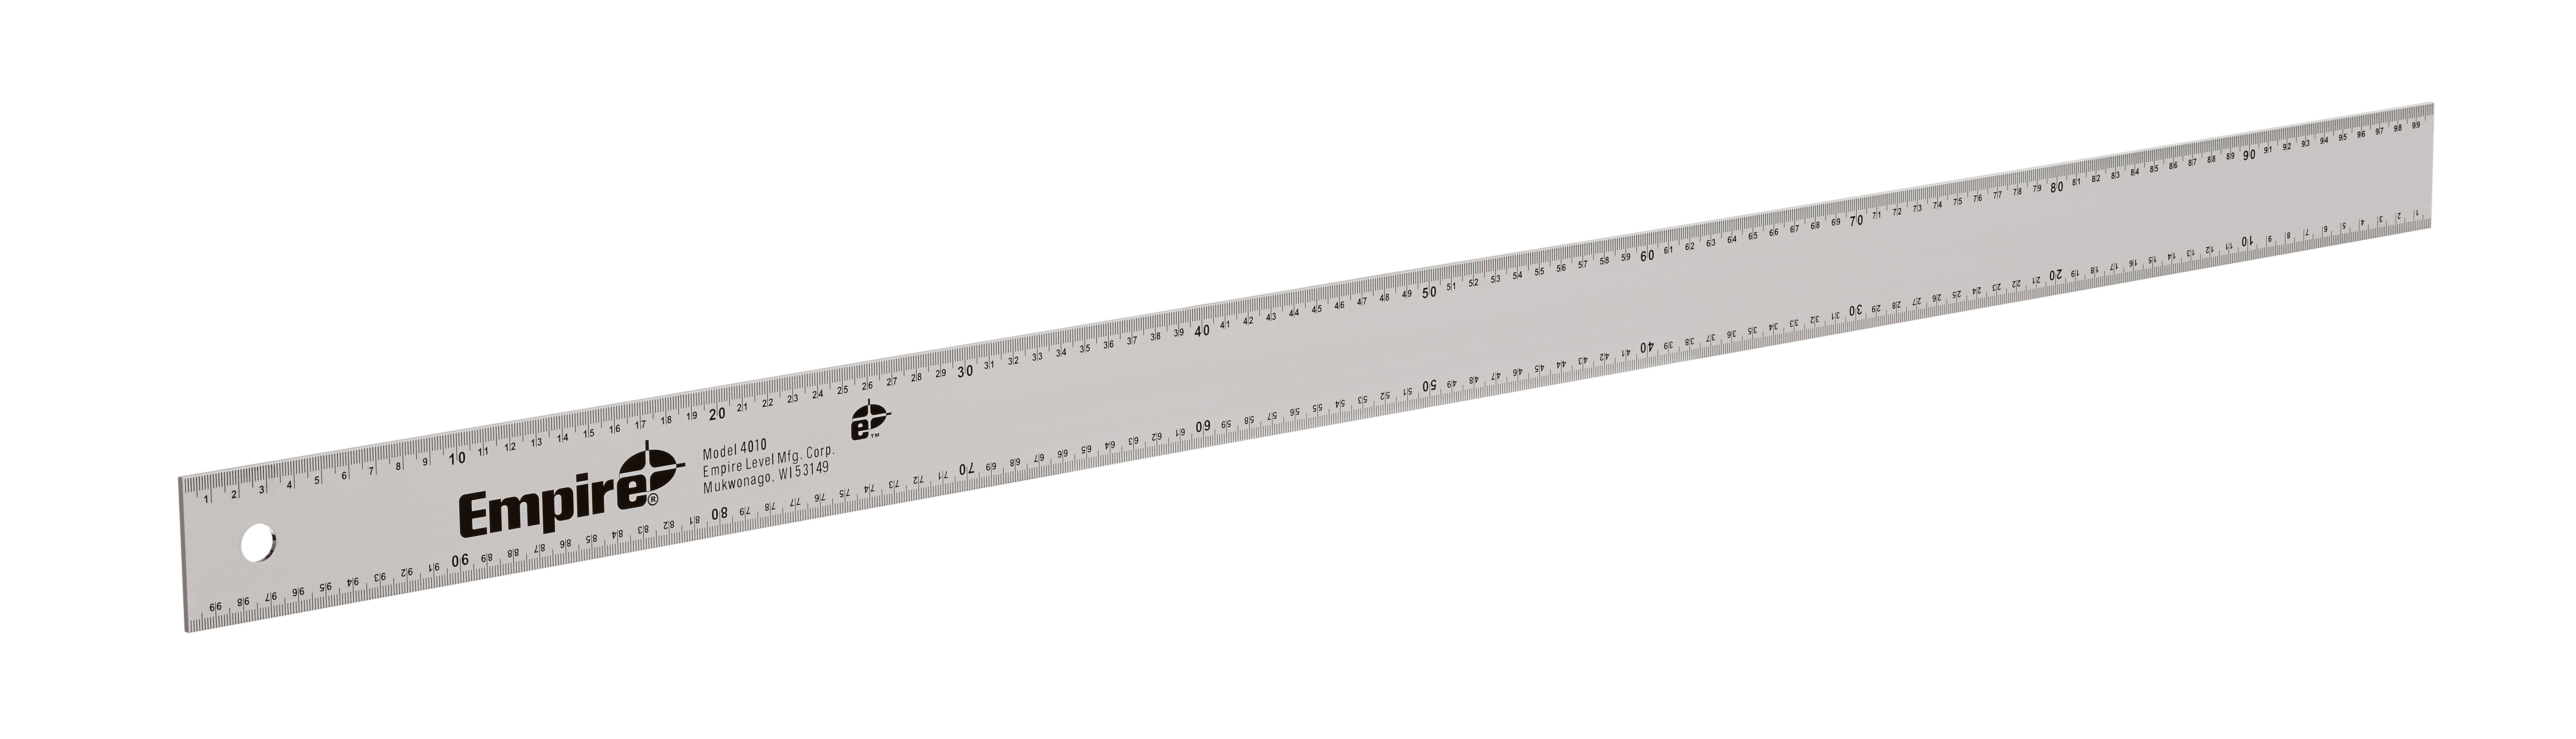 Milwaukee® Empire® 4010 Heavy Duty Straight Edge Ruler, Metric Measuring System, Graduations 1 mm, Aluminum, Silver